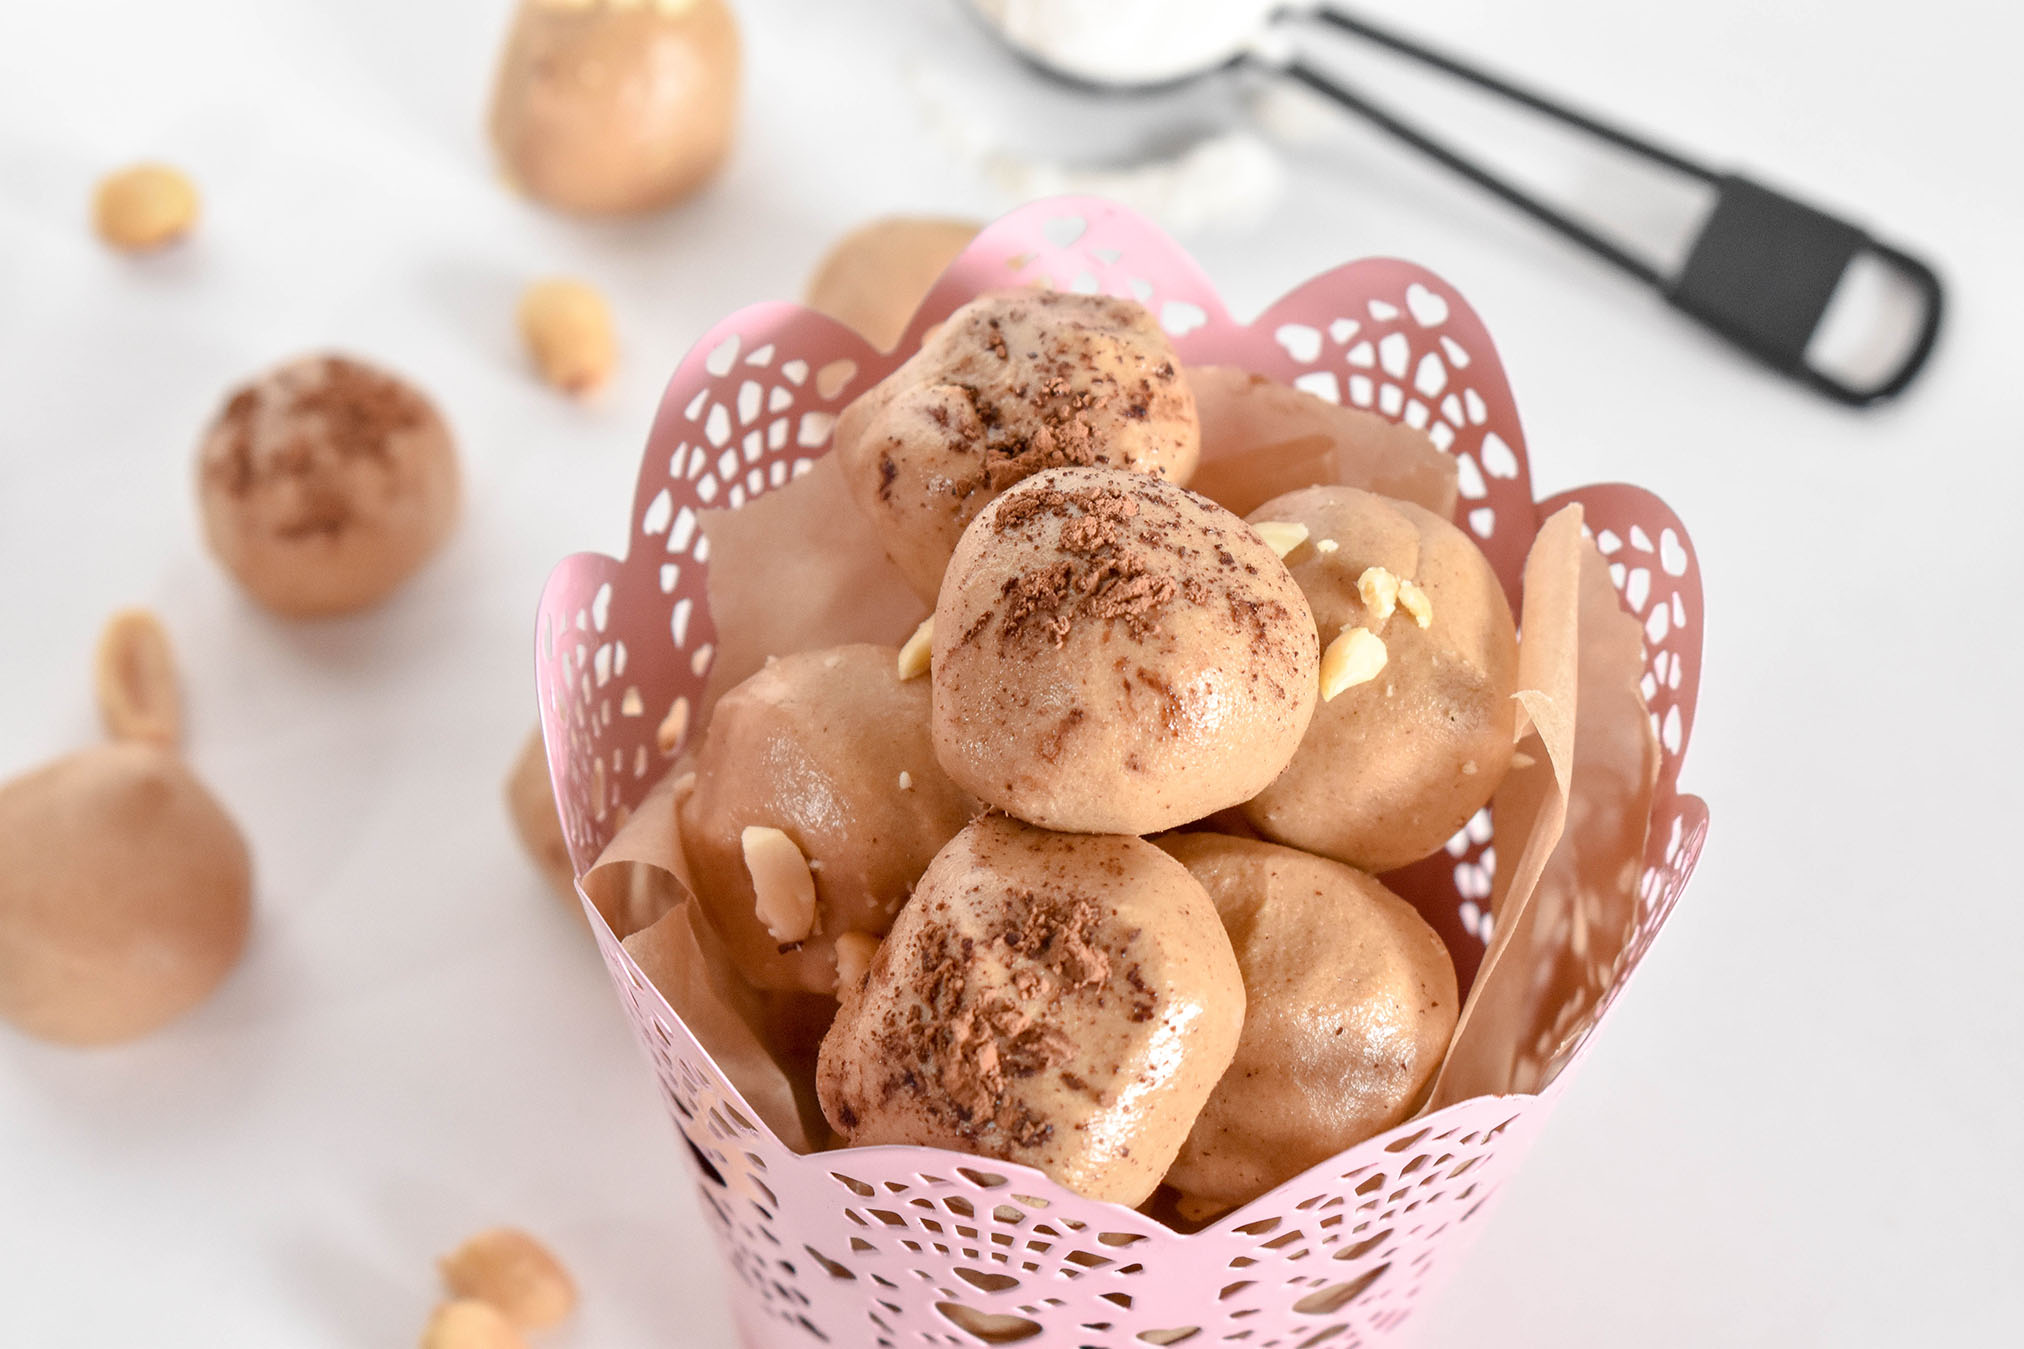 Peanut butter protein balls in a pink decorative cup on a white surface.